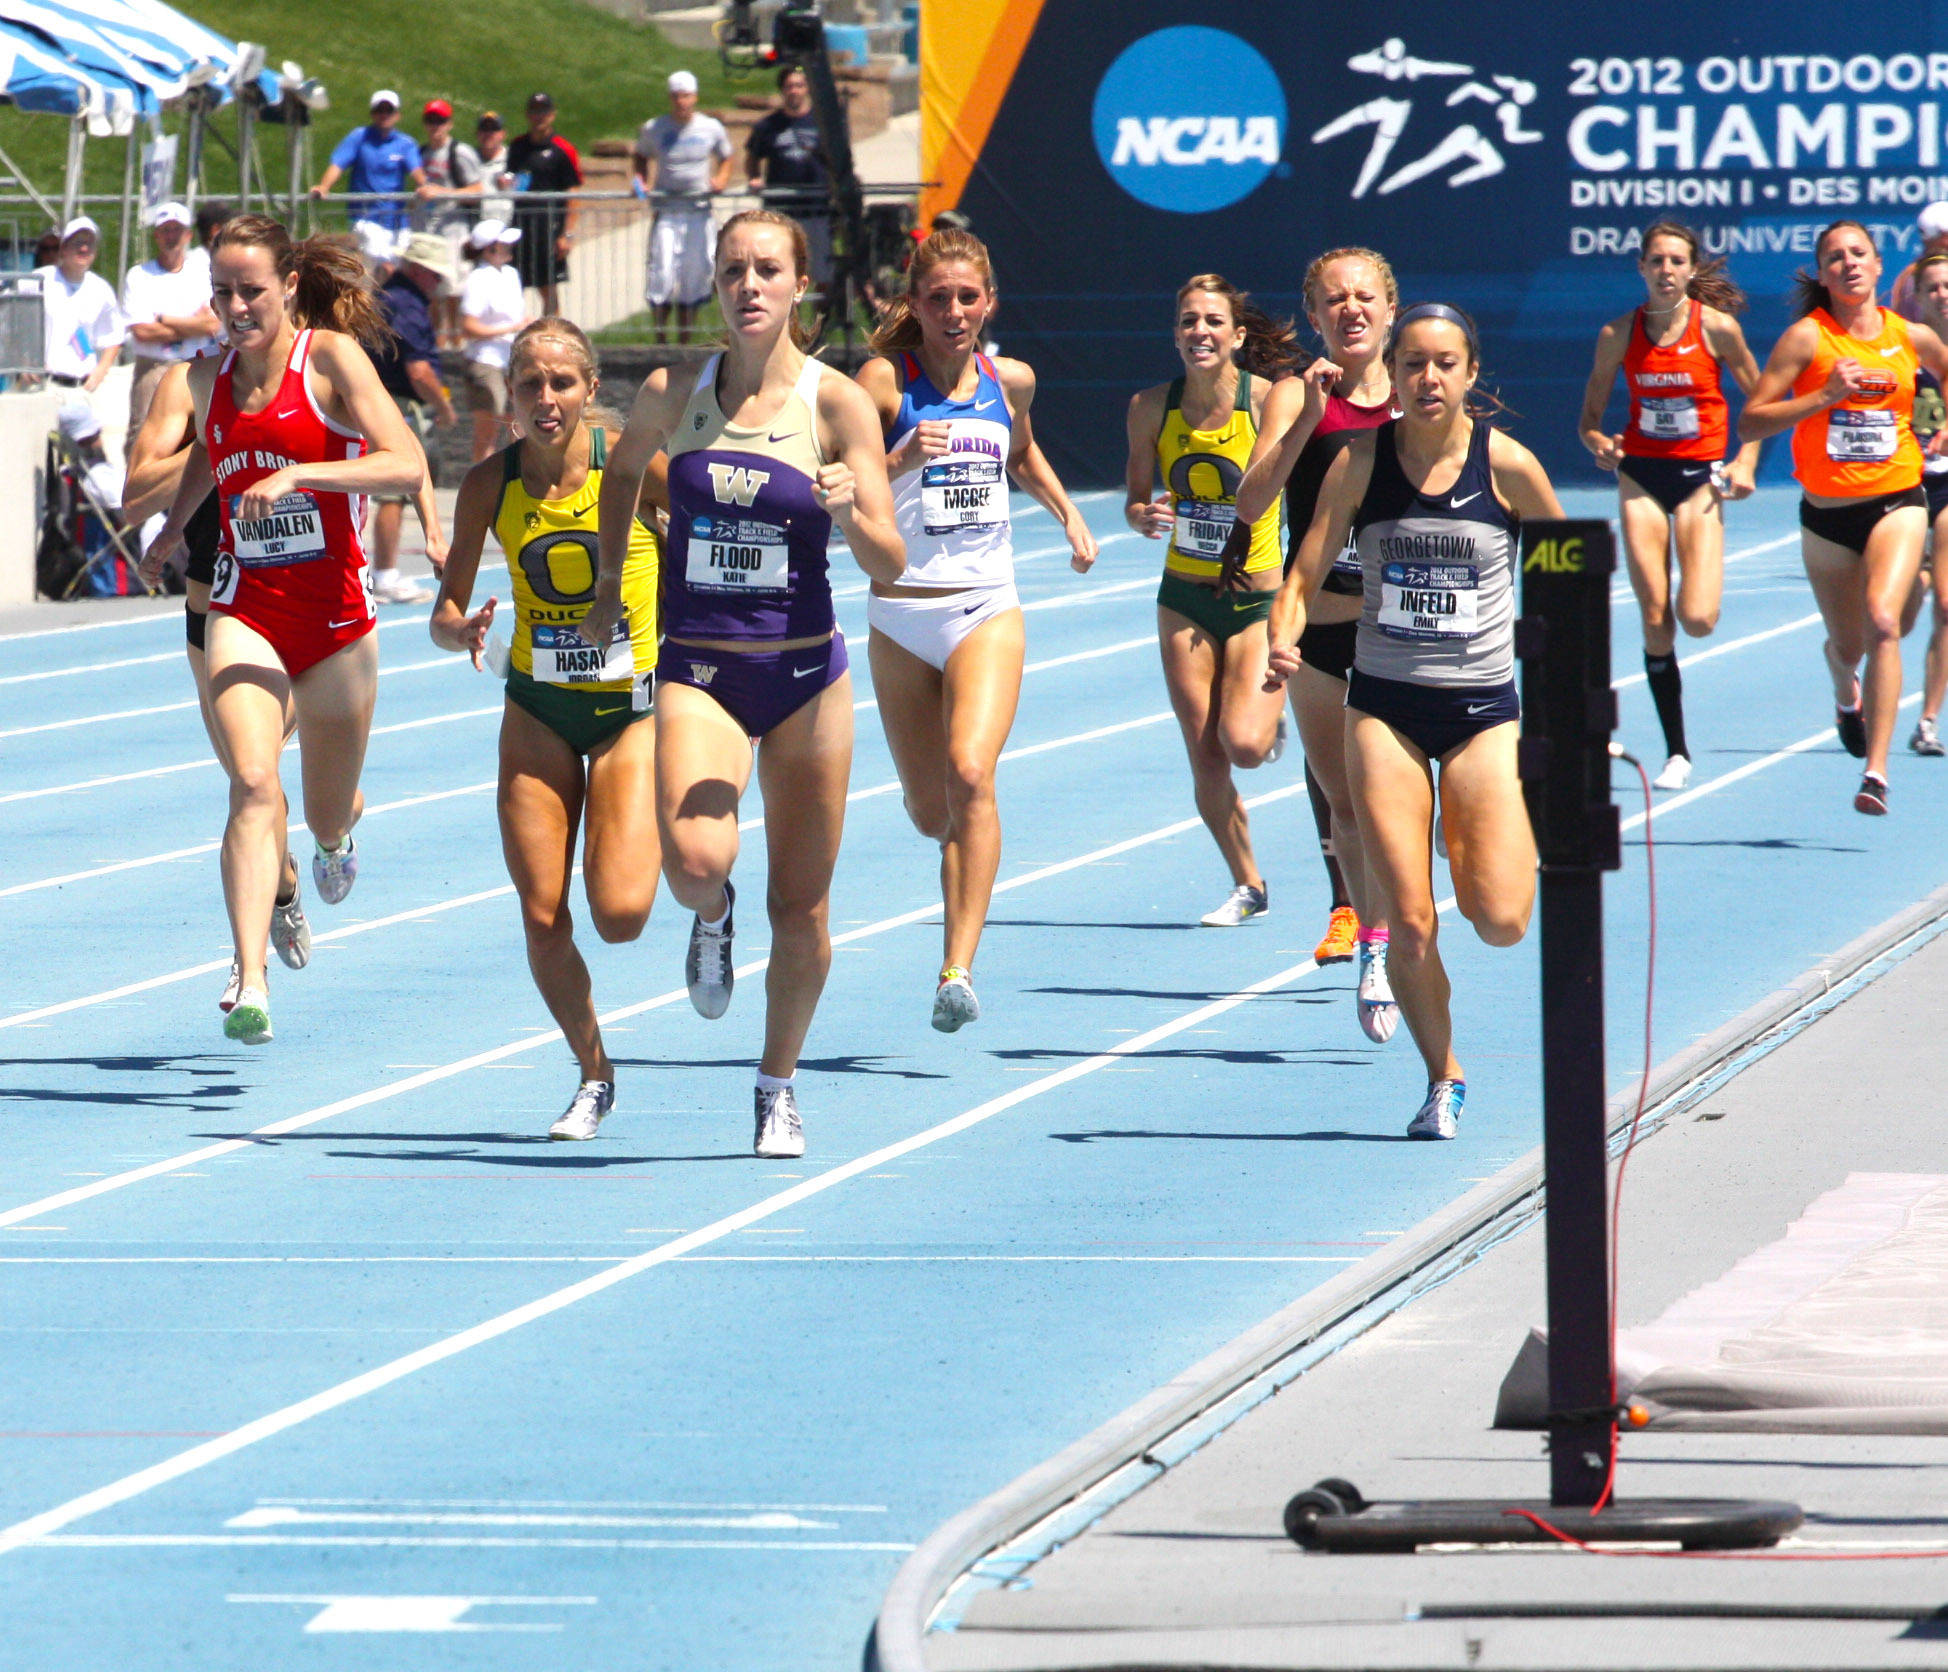 Amanda Winslow battles in a mad dash to the finish of the 1500